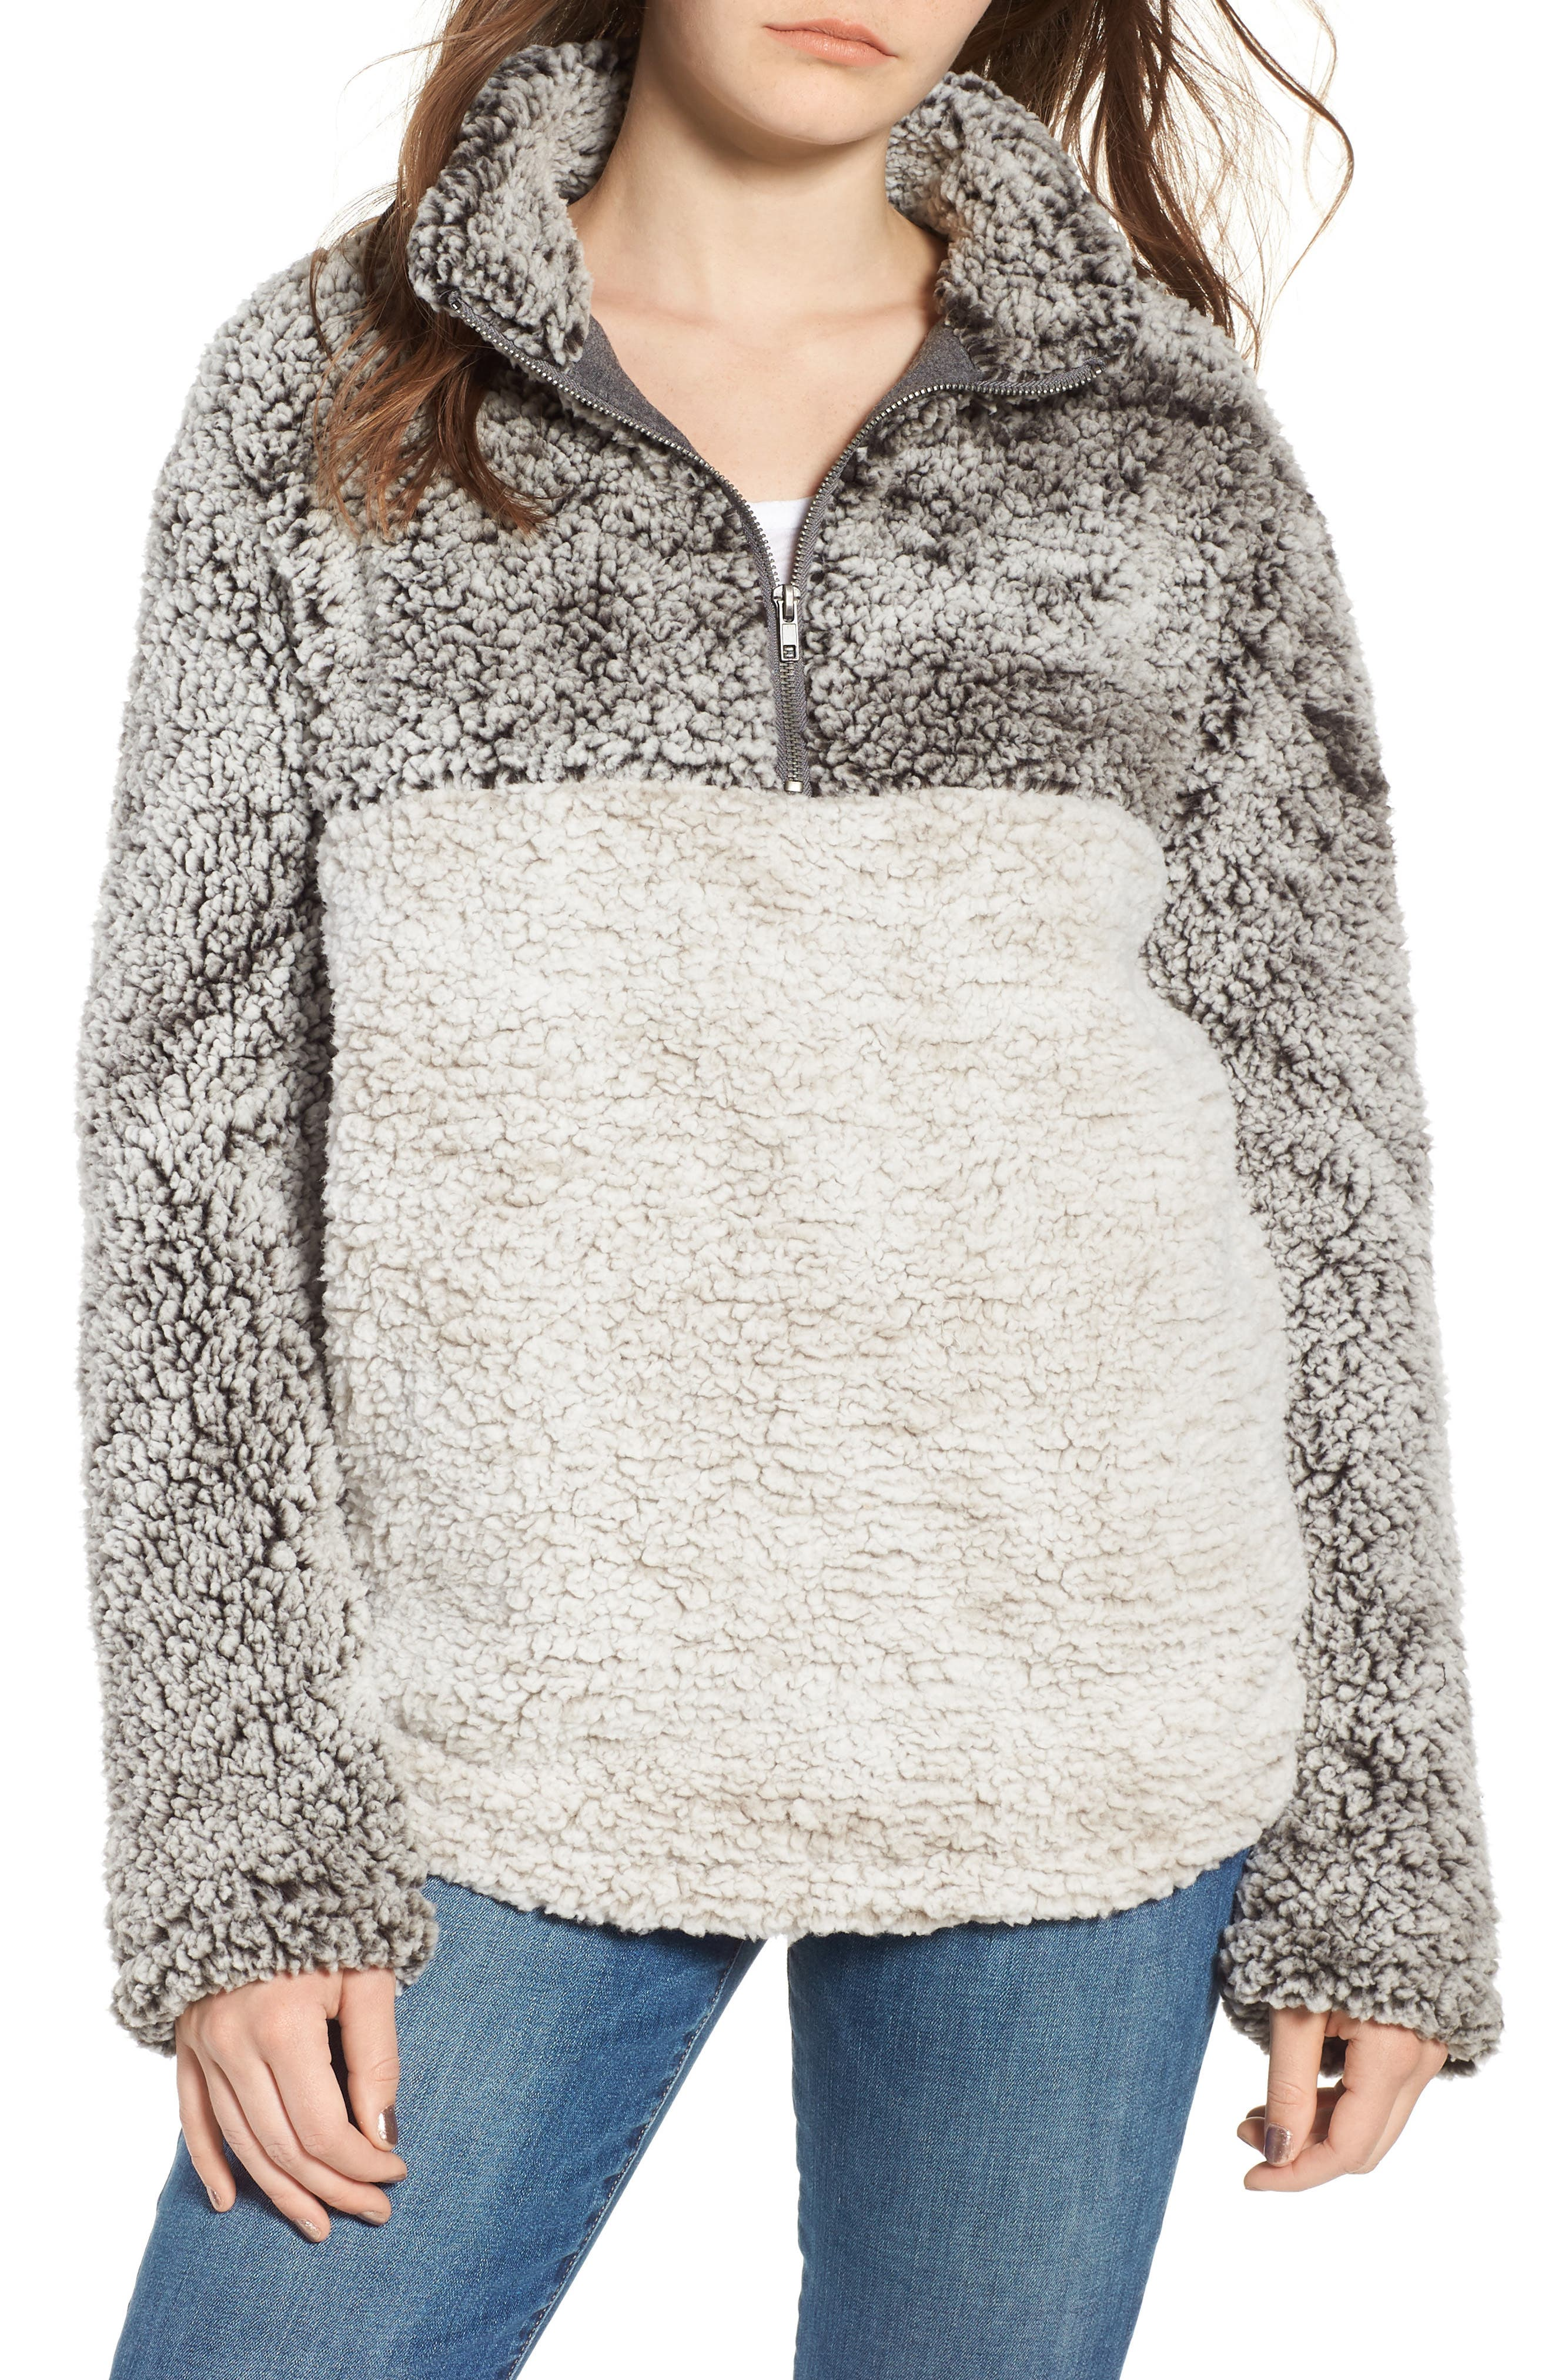 Wubby Fleece Pullover,                         Main,                         color, Charcoal/Ivory